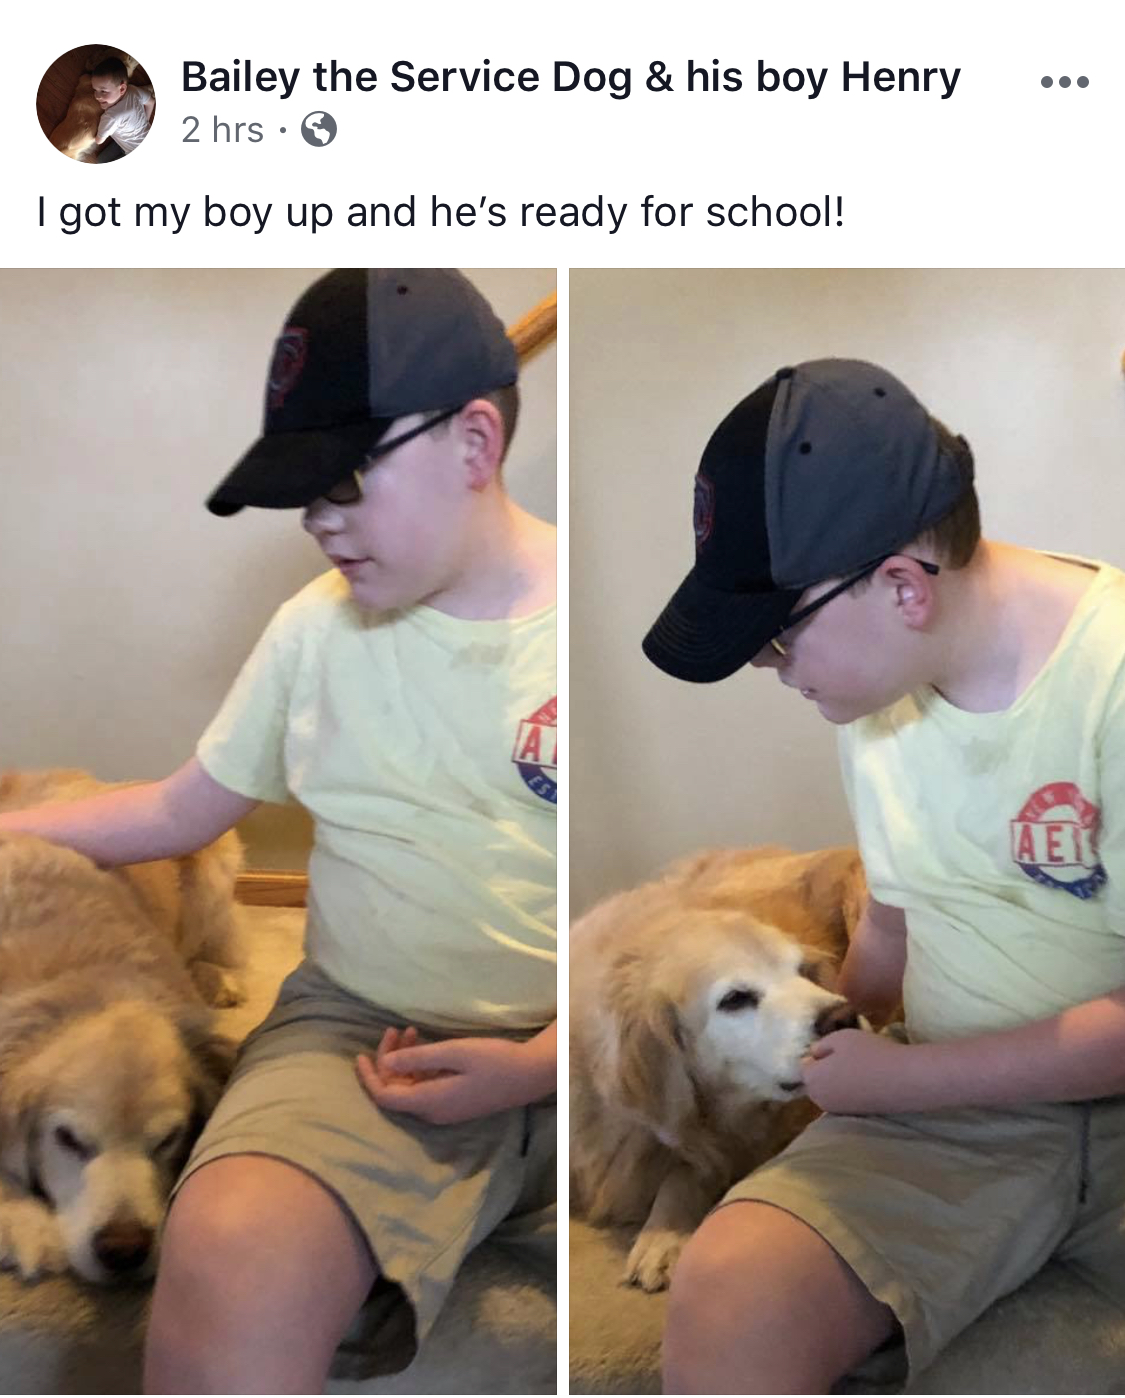 Autism Service Dog Bailey and his boy